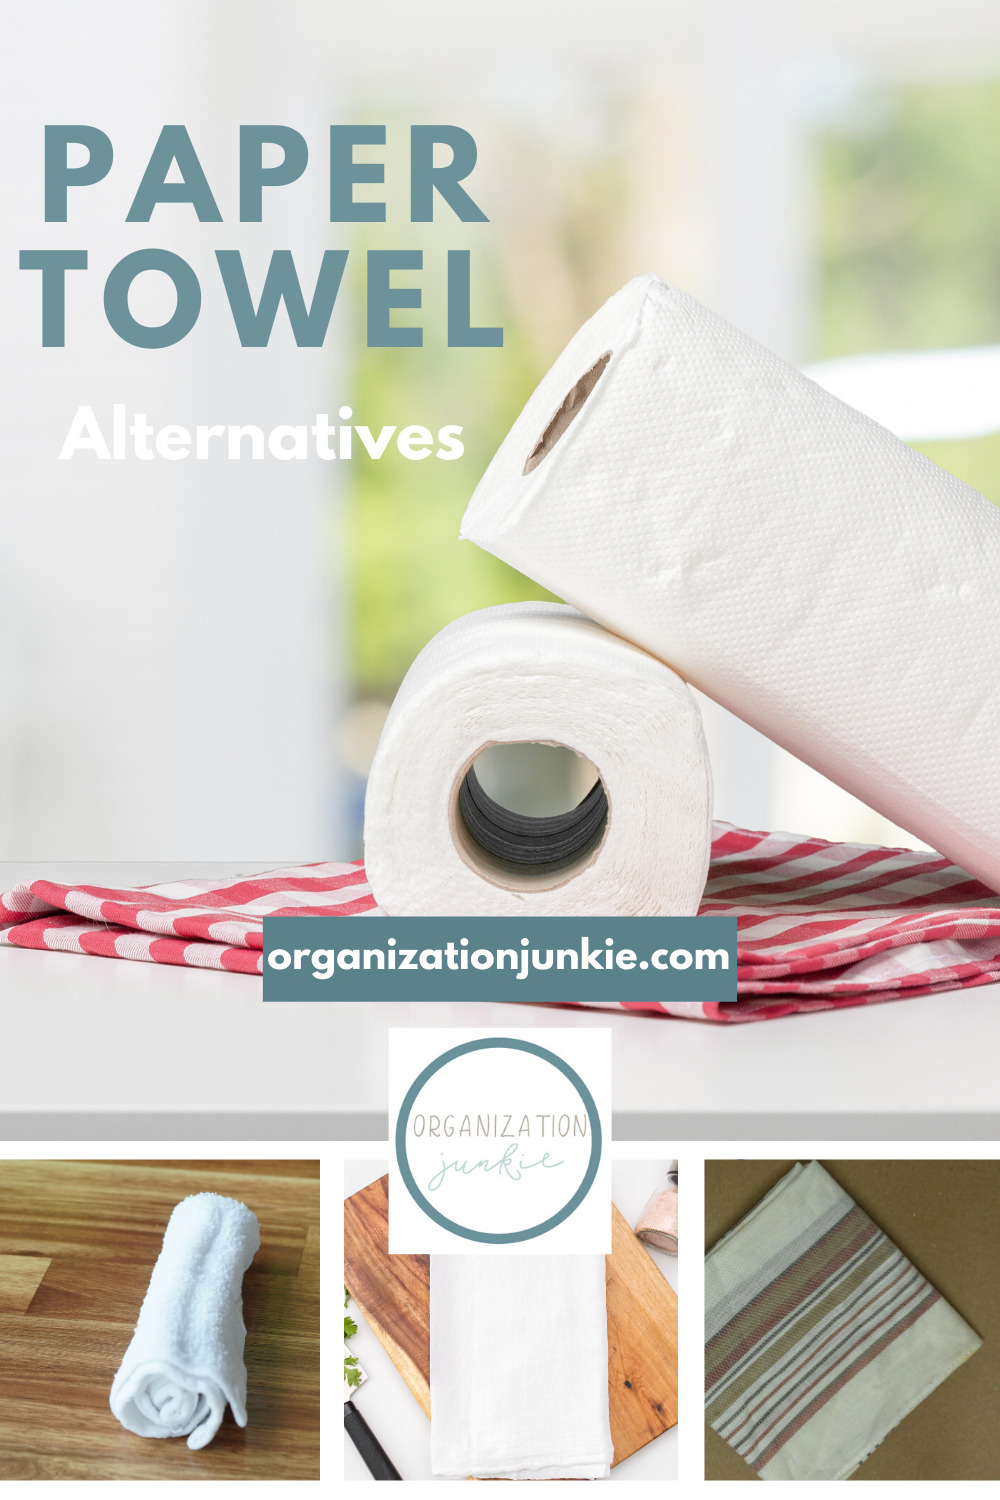 Paper towels tax the environment and are not cheap. There are plenty of alternatives that you can use. And some you can make. Read the post to learn about these money saving ideas that are sustainable as well. #papertowelalternative #Diypapertowelalternative